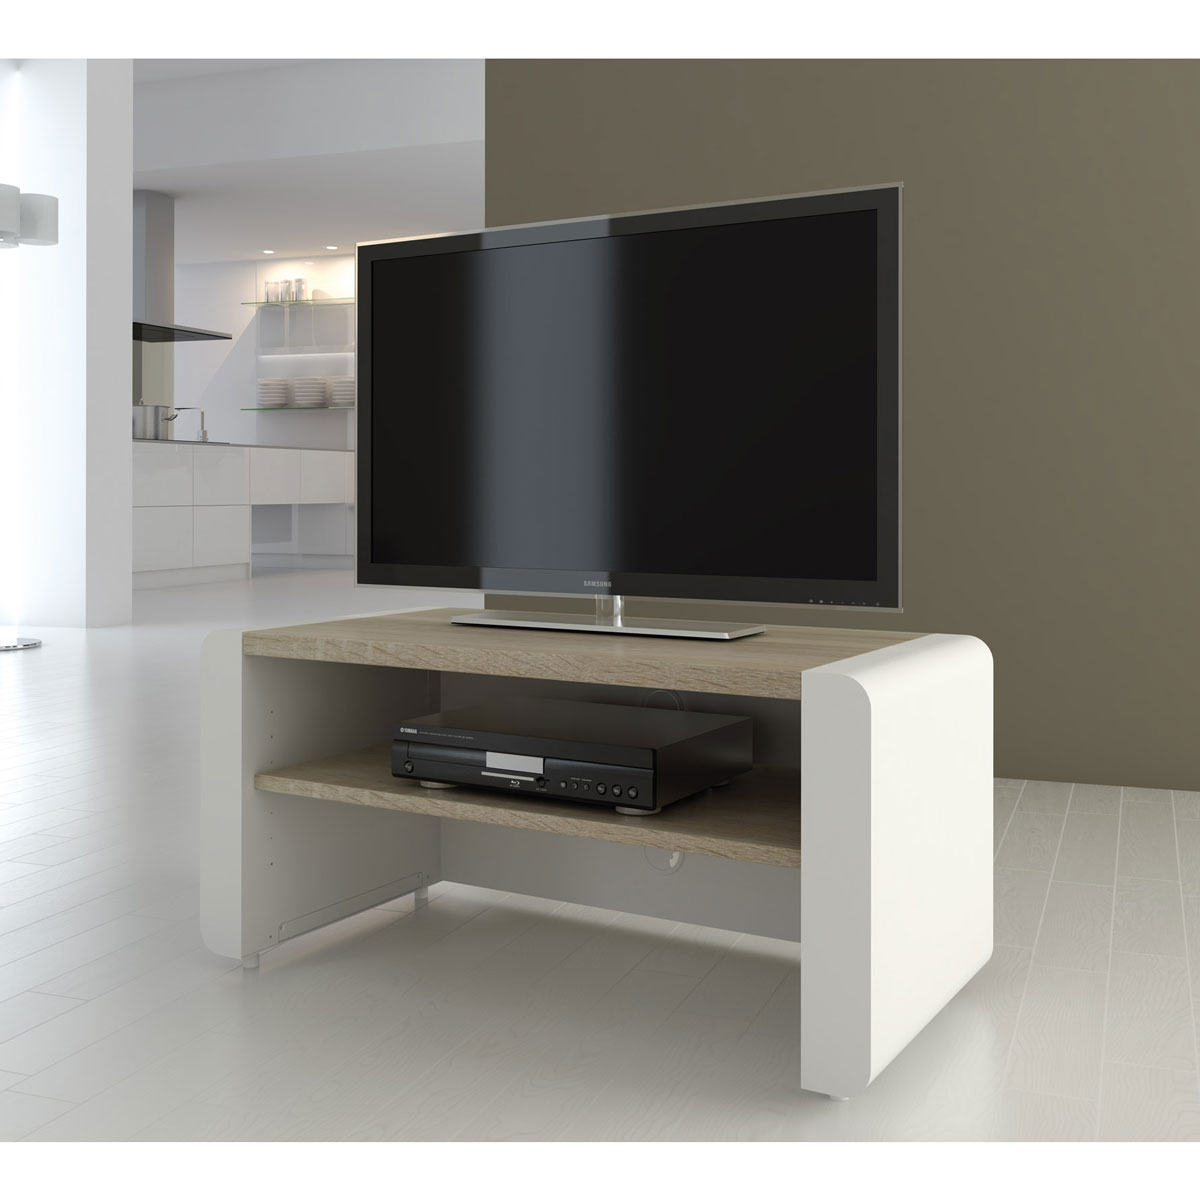 schnepel elf 120 tv schrank sideboard tv rack board m bel ebay. Black Bedroom Furniture Sets. Home Design Ideas